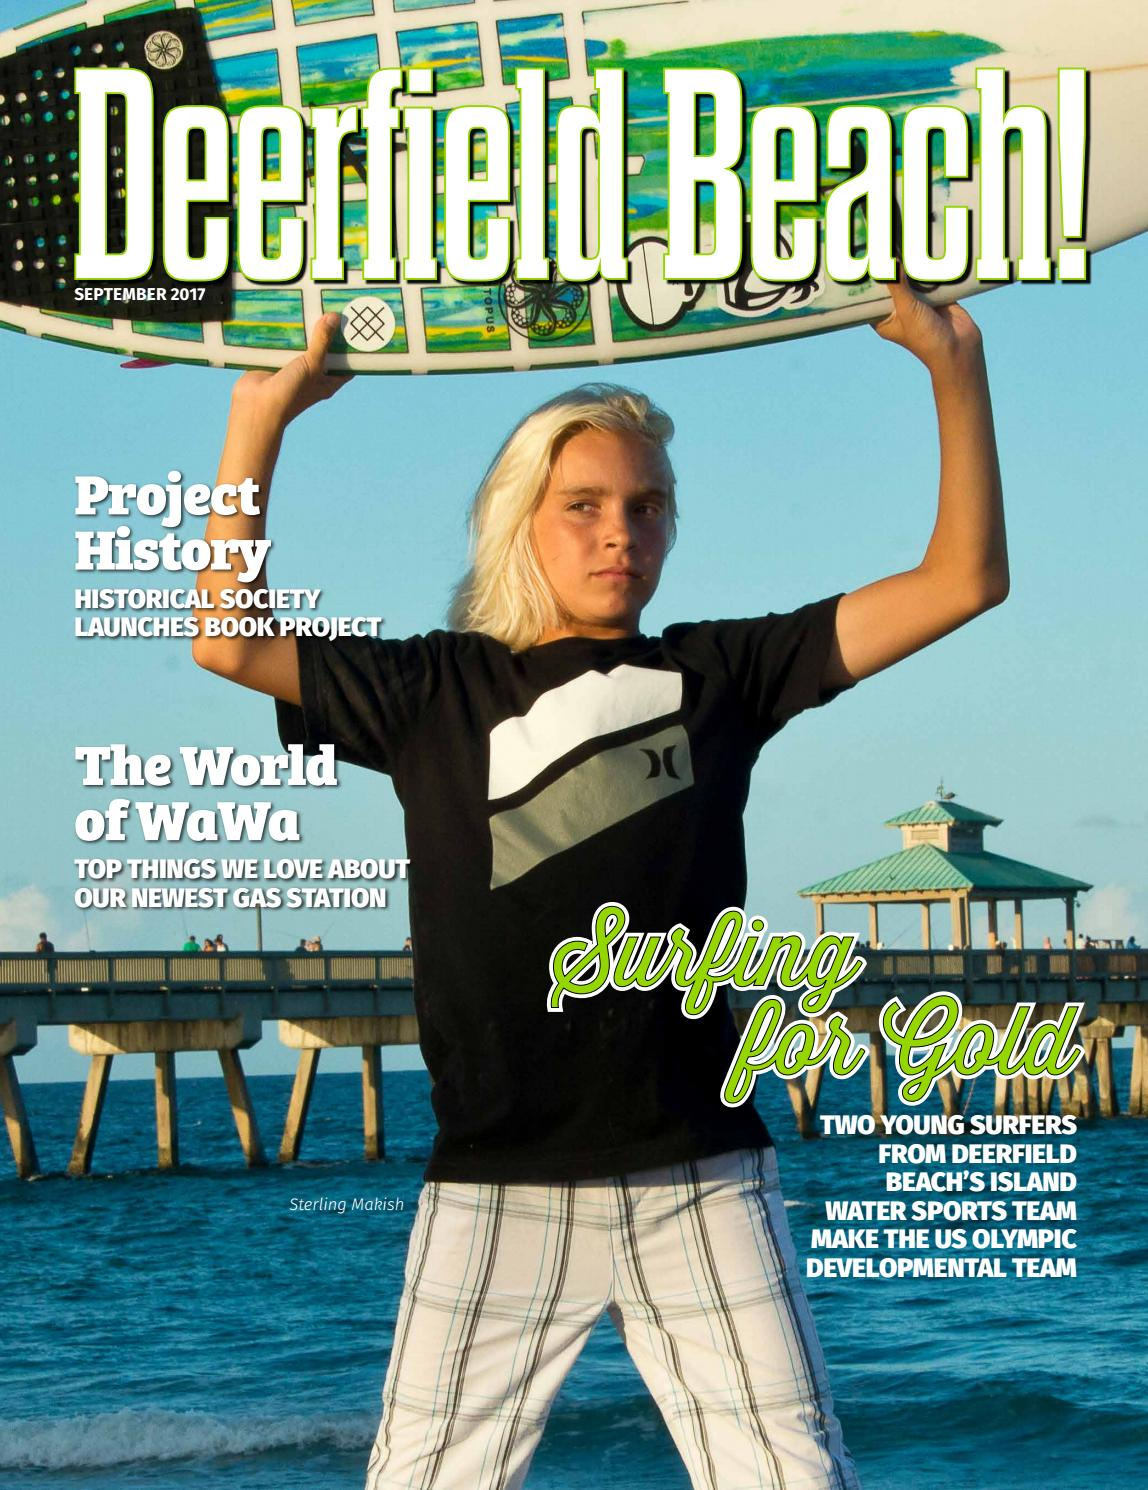 Deerfield Beach! Magazine September 2017 by Point! Publishing - issuu